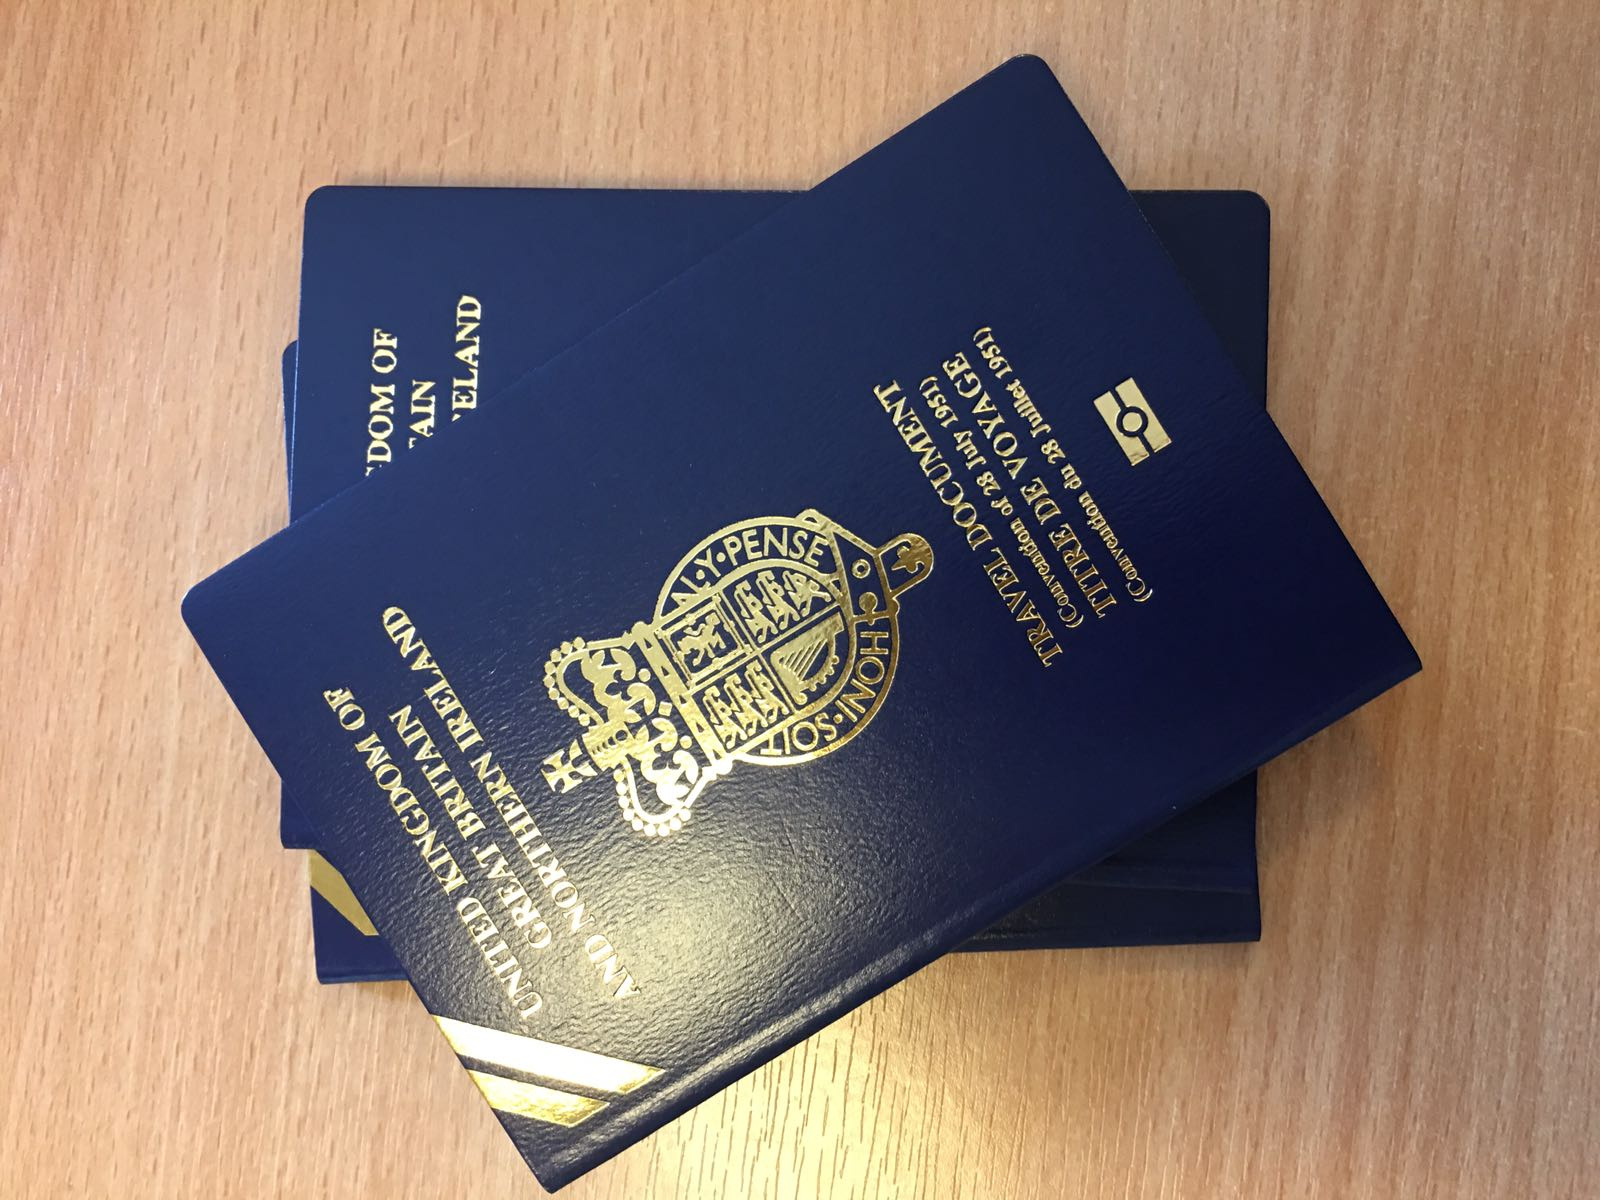 a stack of travel passports